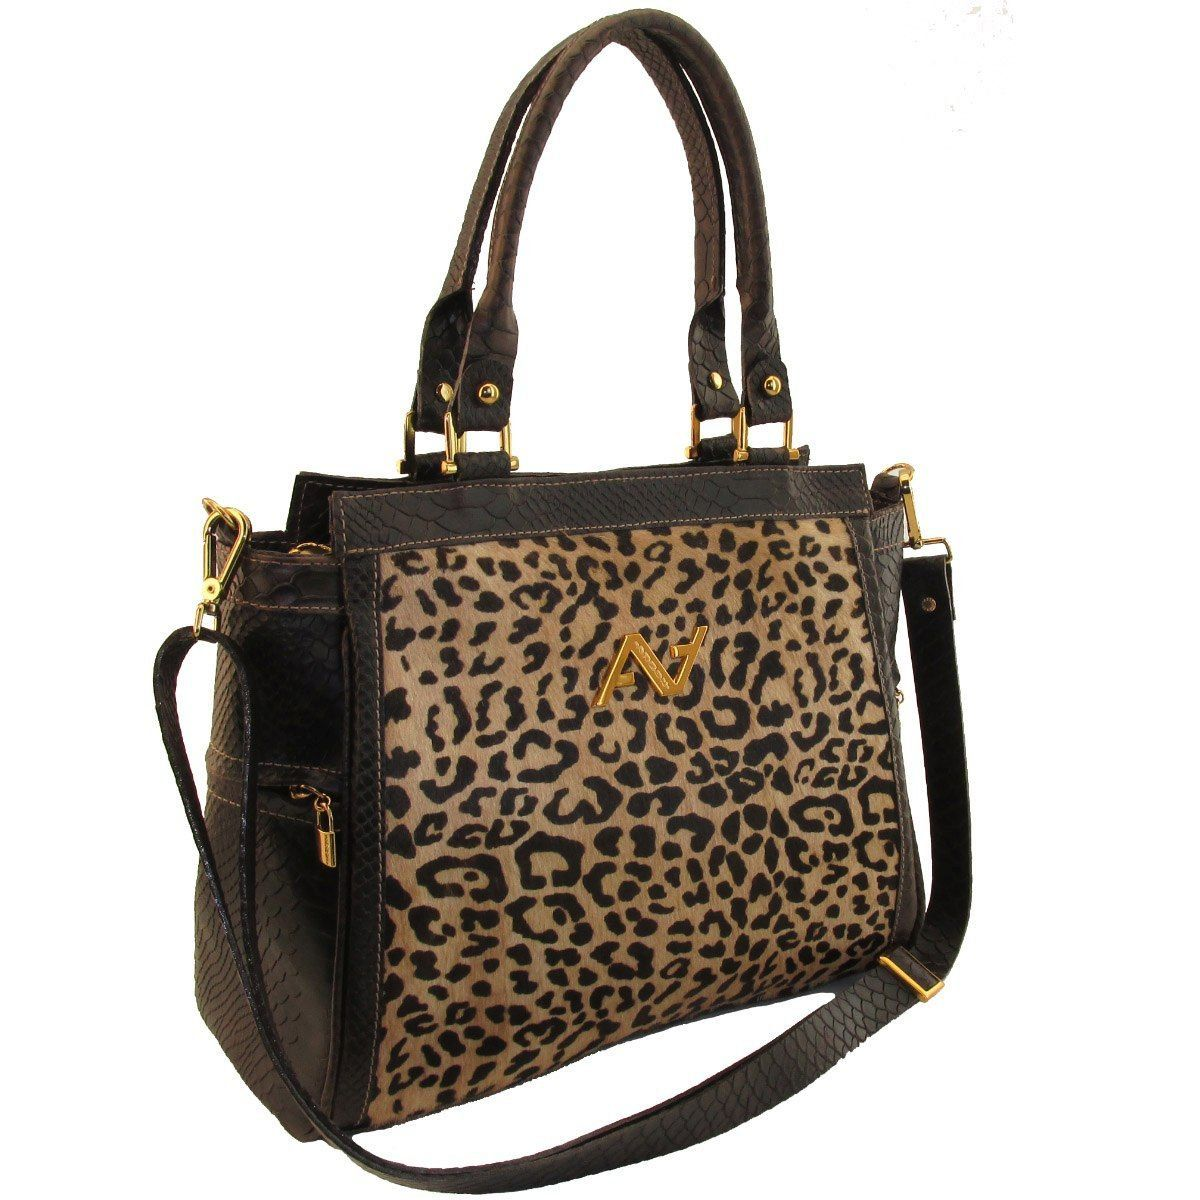 Bolsa Feminina ARZON Animal Print